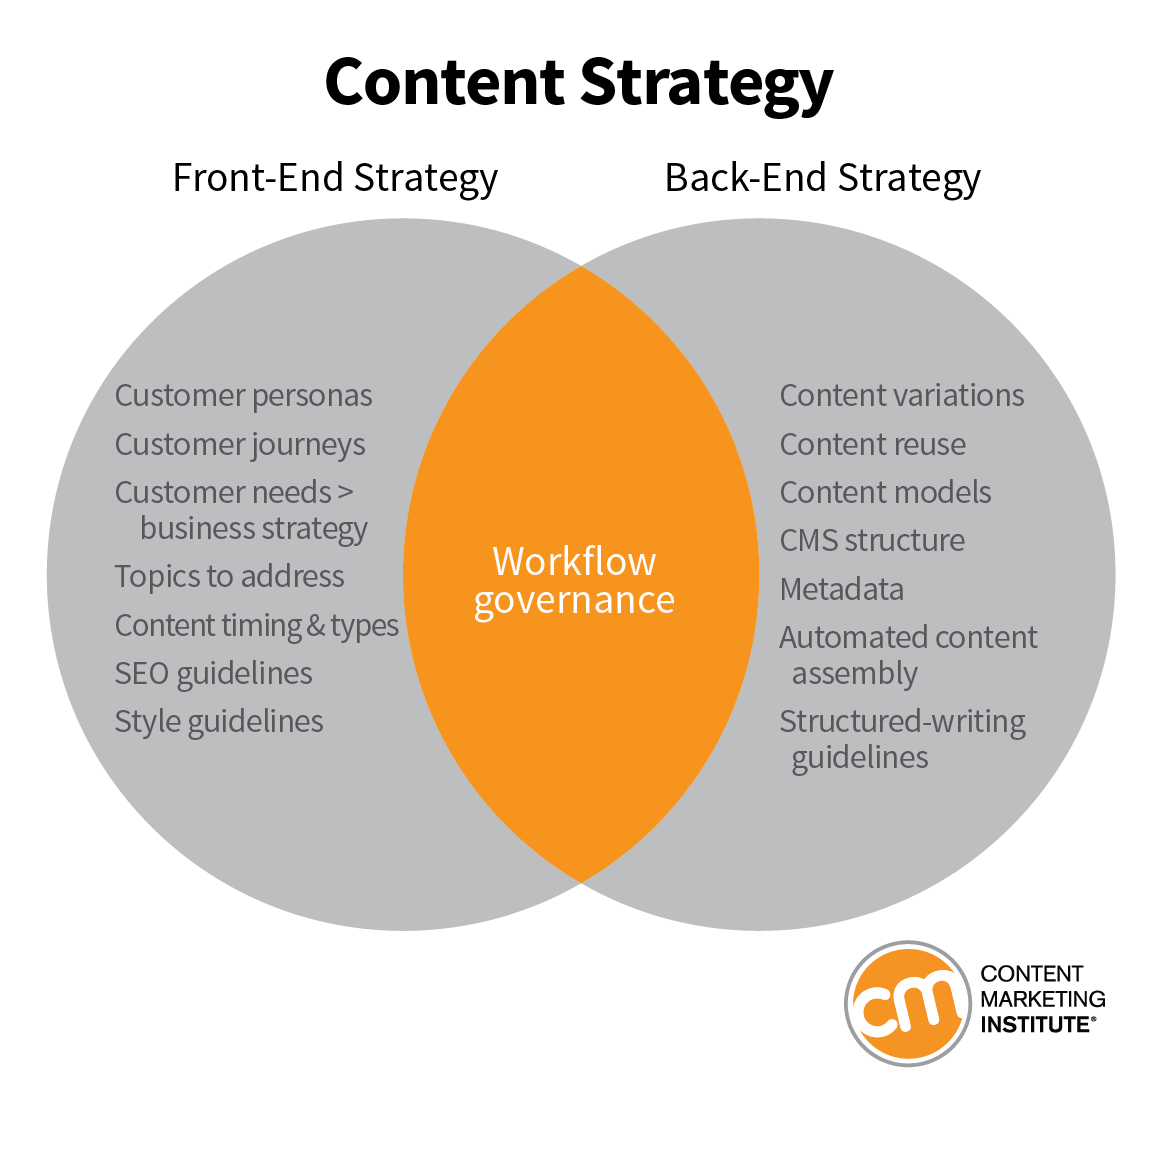 A content strategy keeps everything organized. It stops the temptation to randomly post on different channels at sporadic times, and concentrates resources around doing only the highest-value activities.